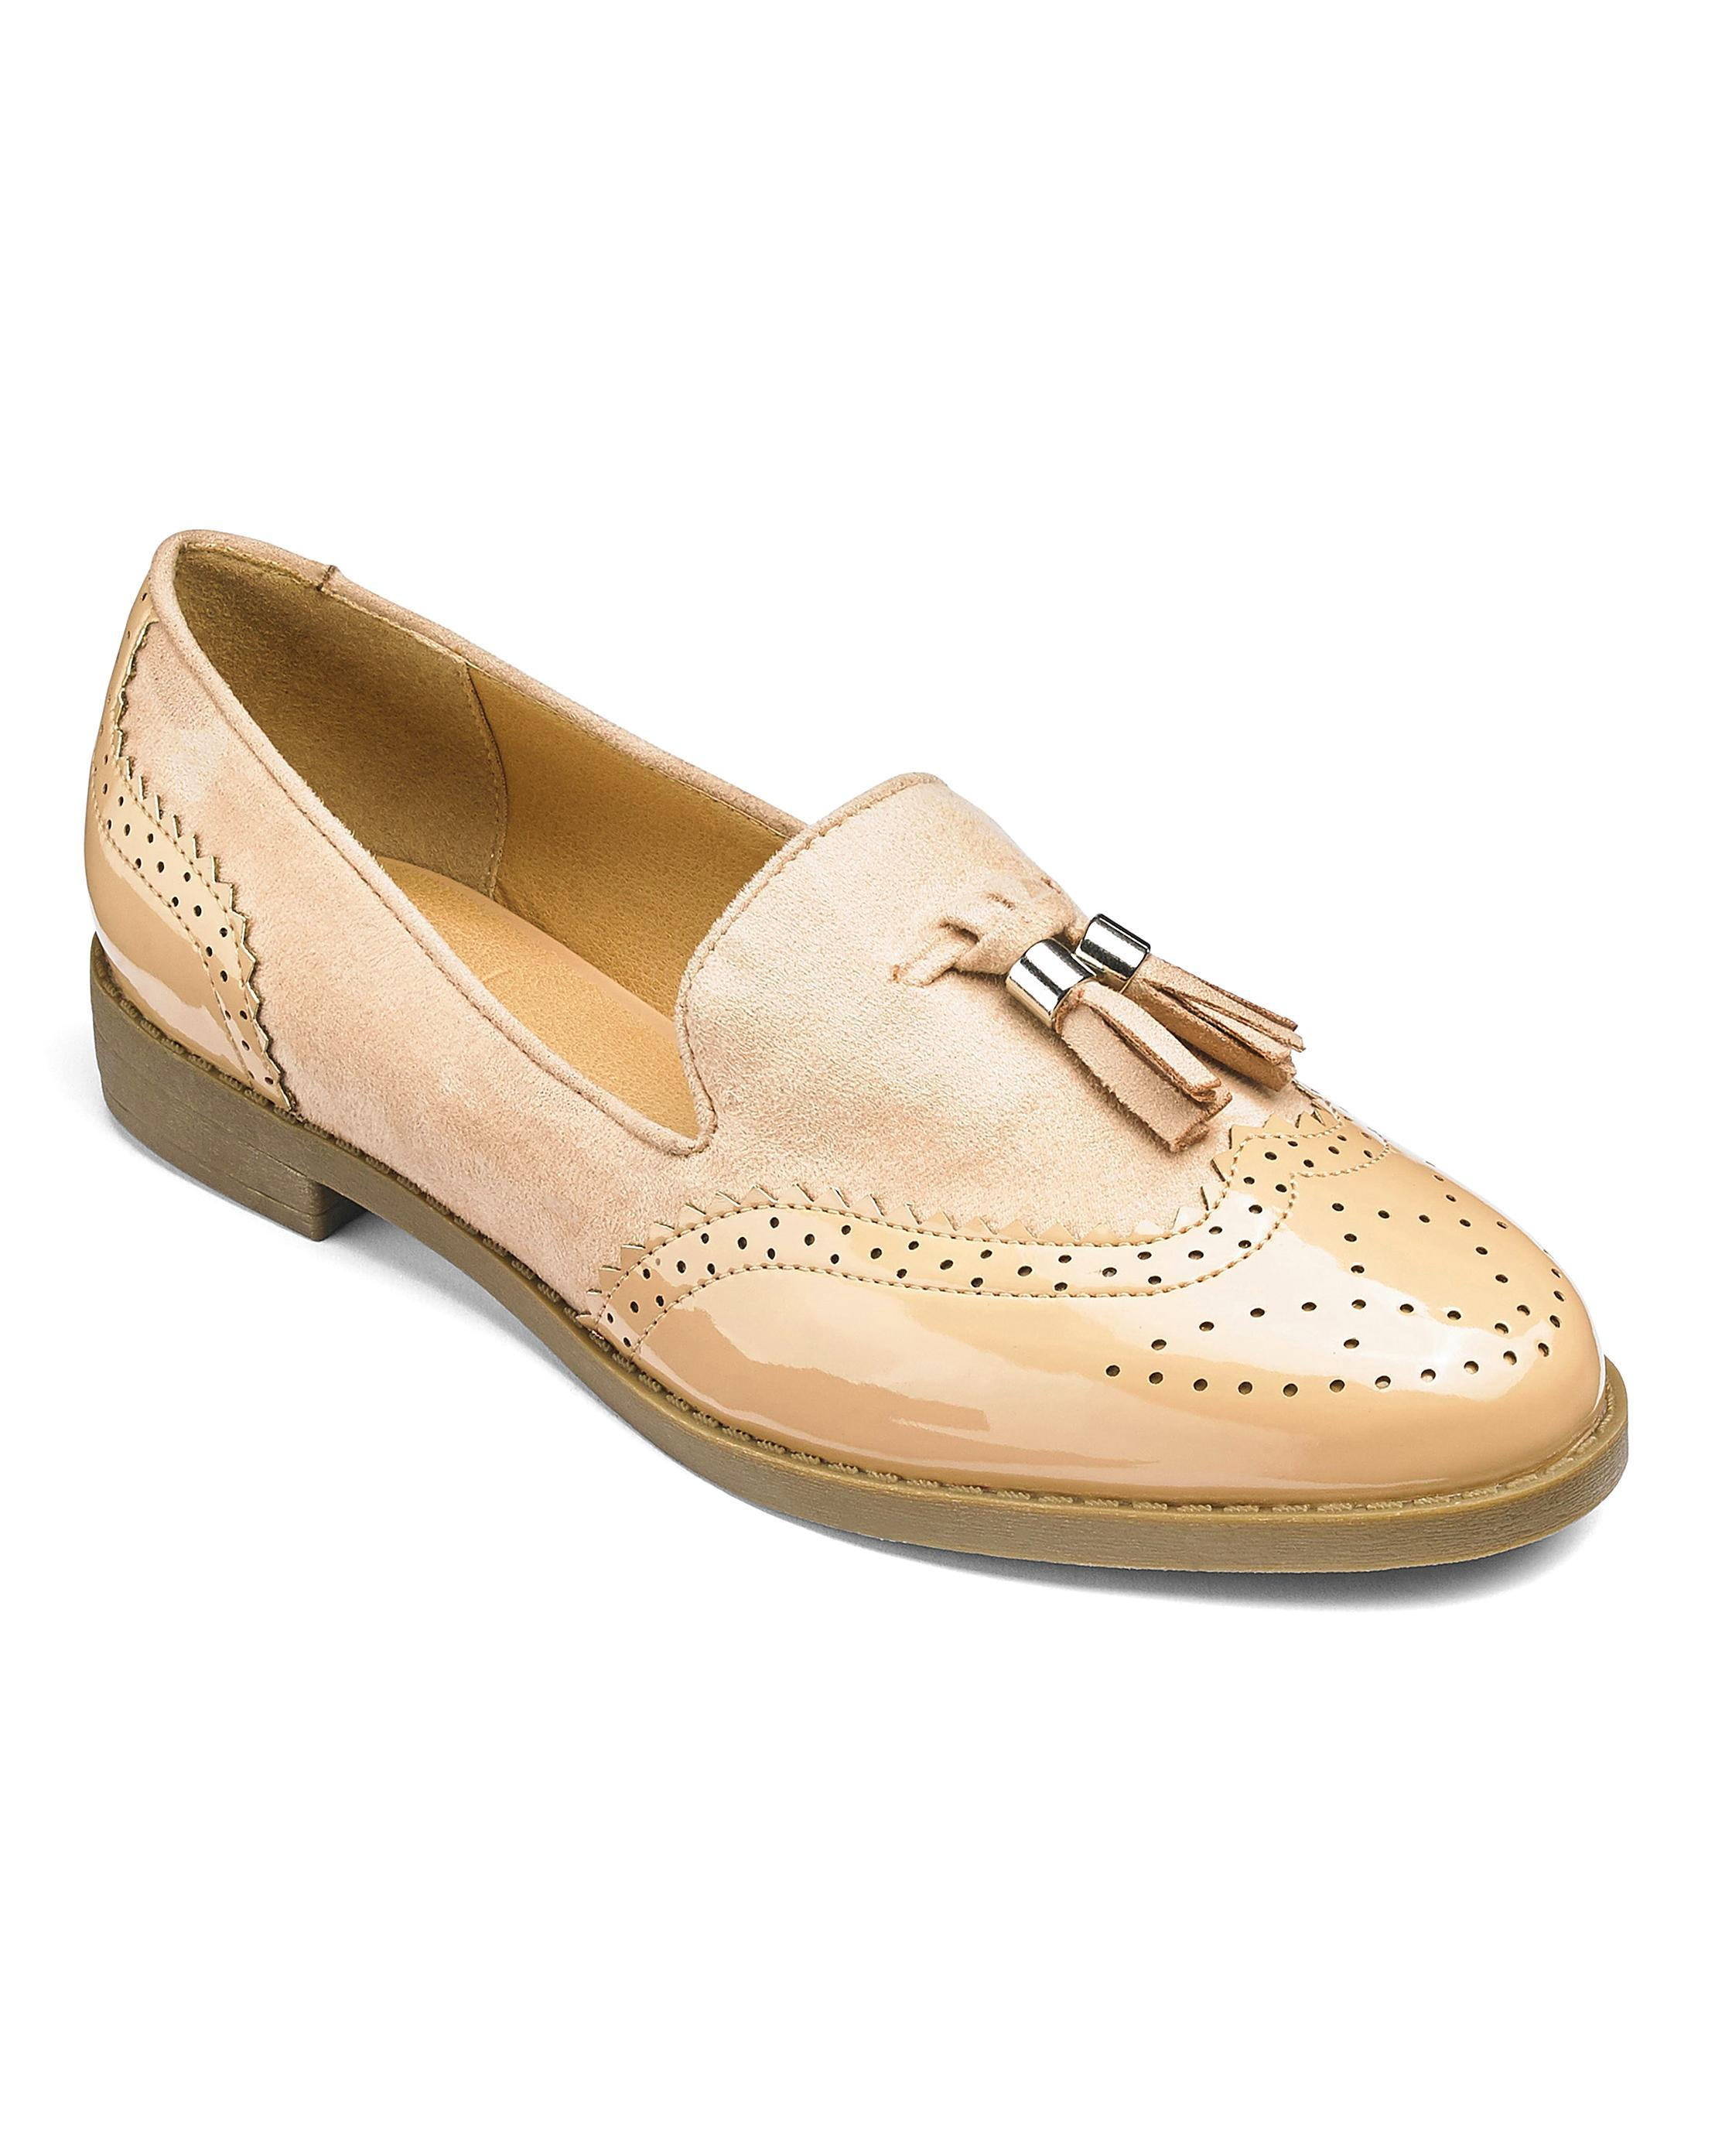 d3a040ce2cc Lyst - Simply Be Sole Diva Tassel Loafers in Natural